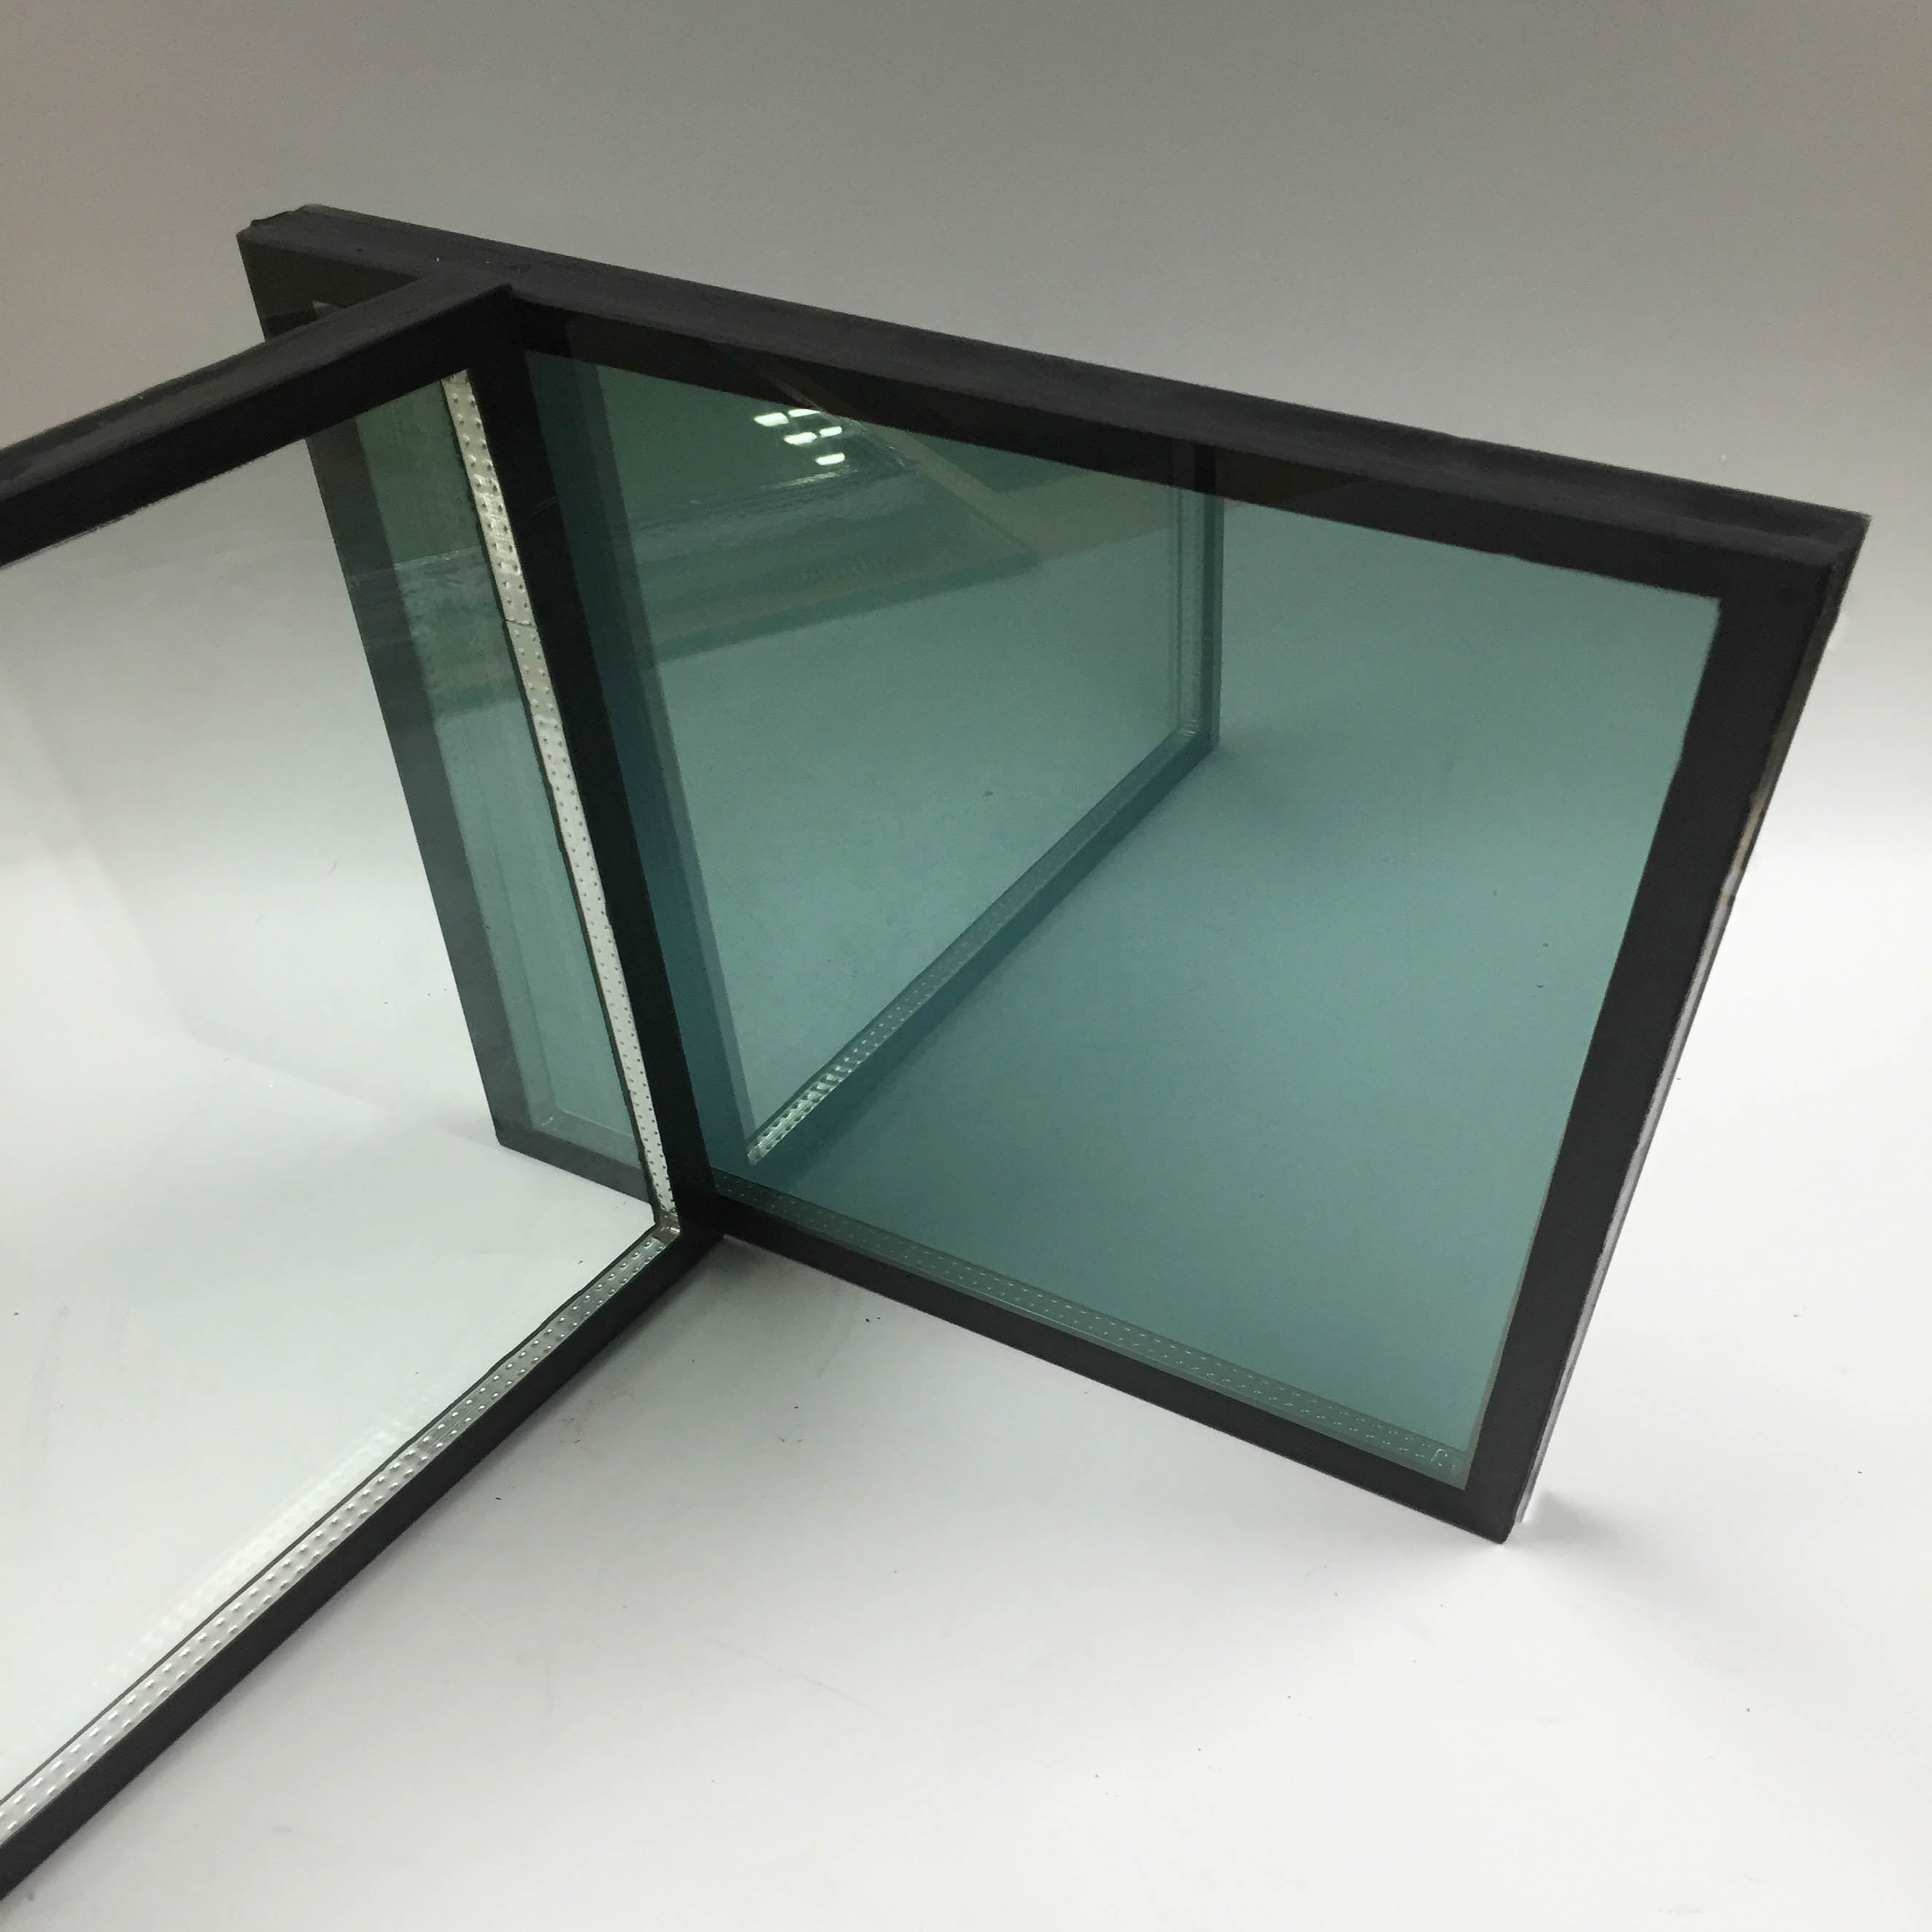 Tempered low e double glazing igu glass curtain wall